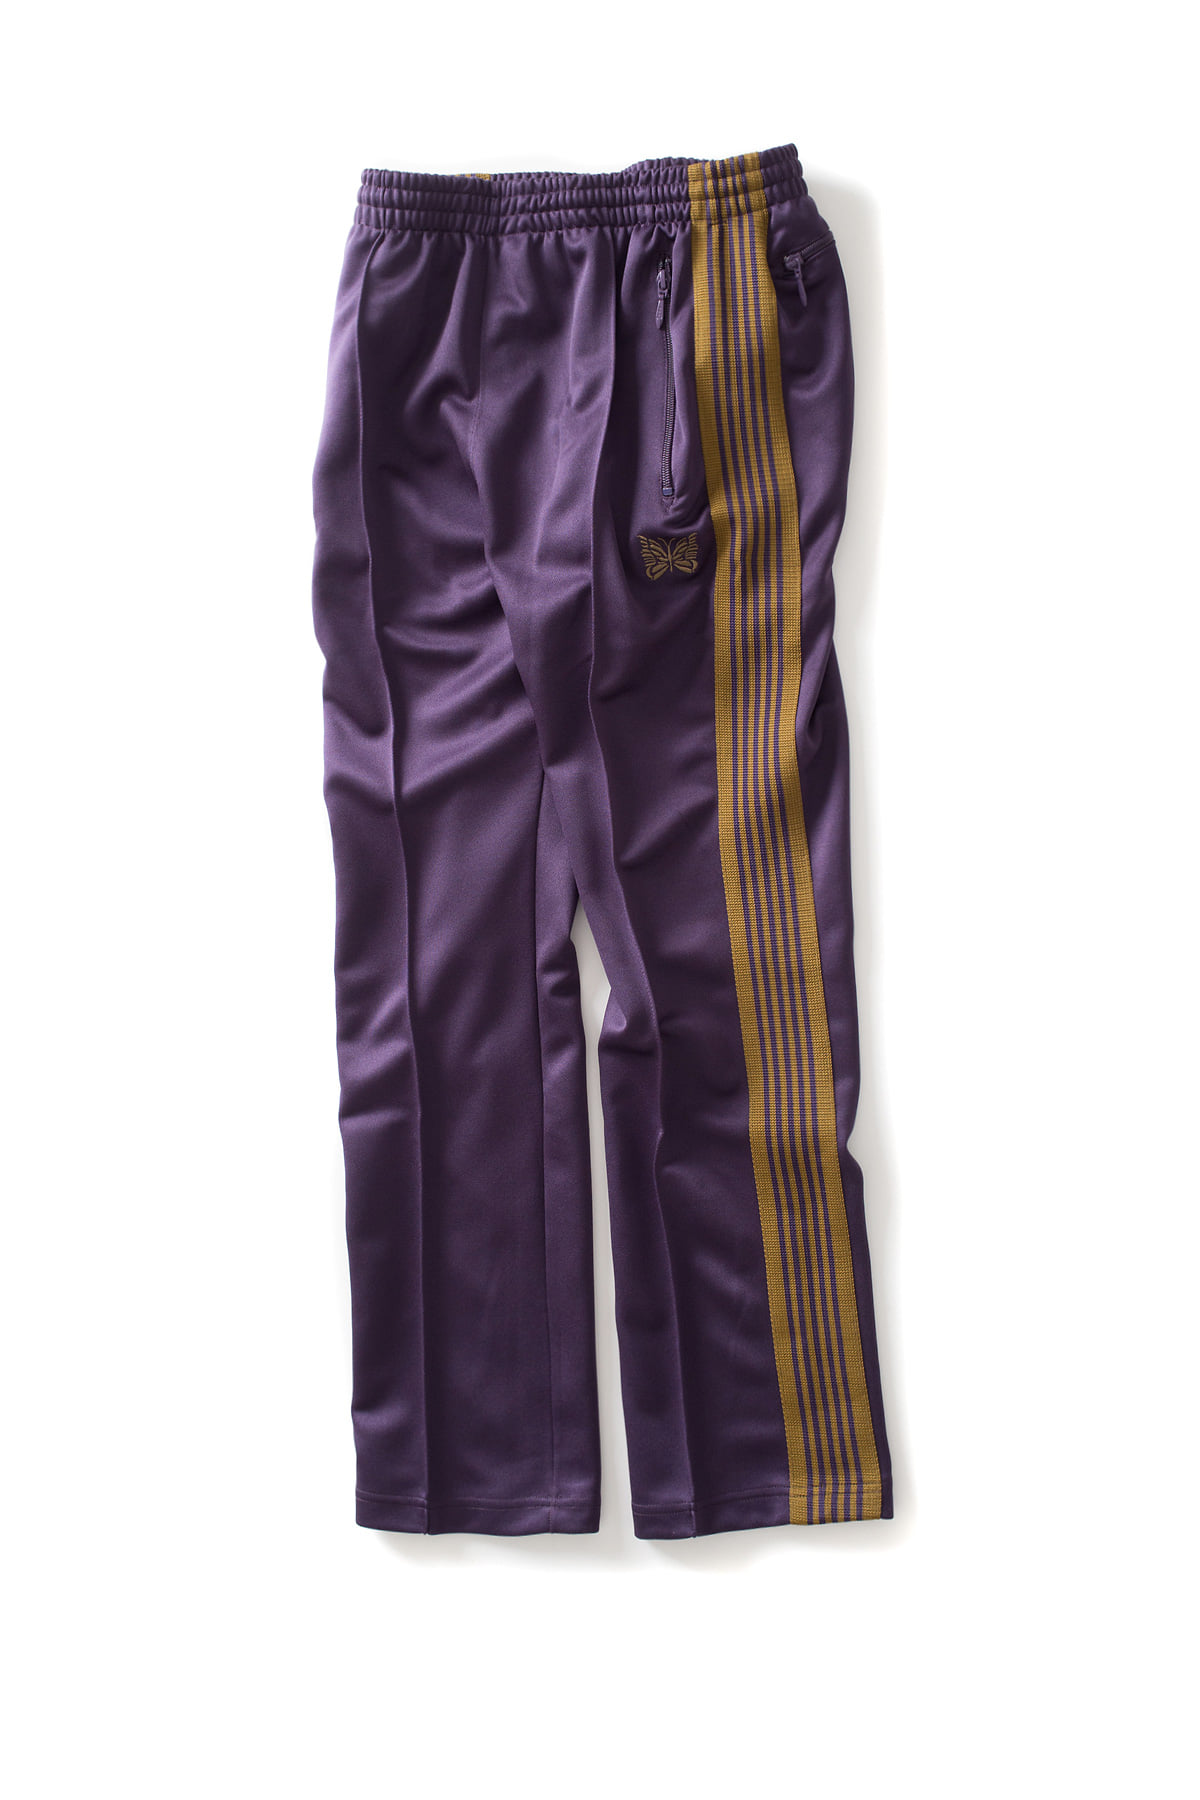 NEEDLES : Narrow Track Pants (Purple)